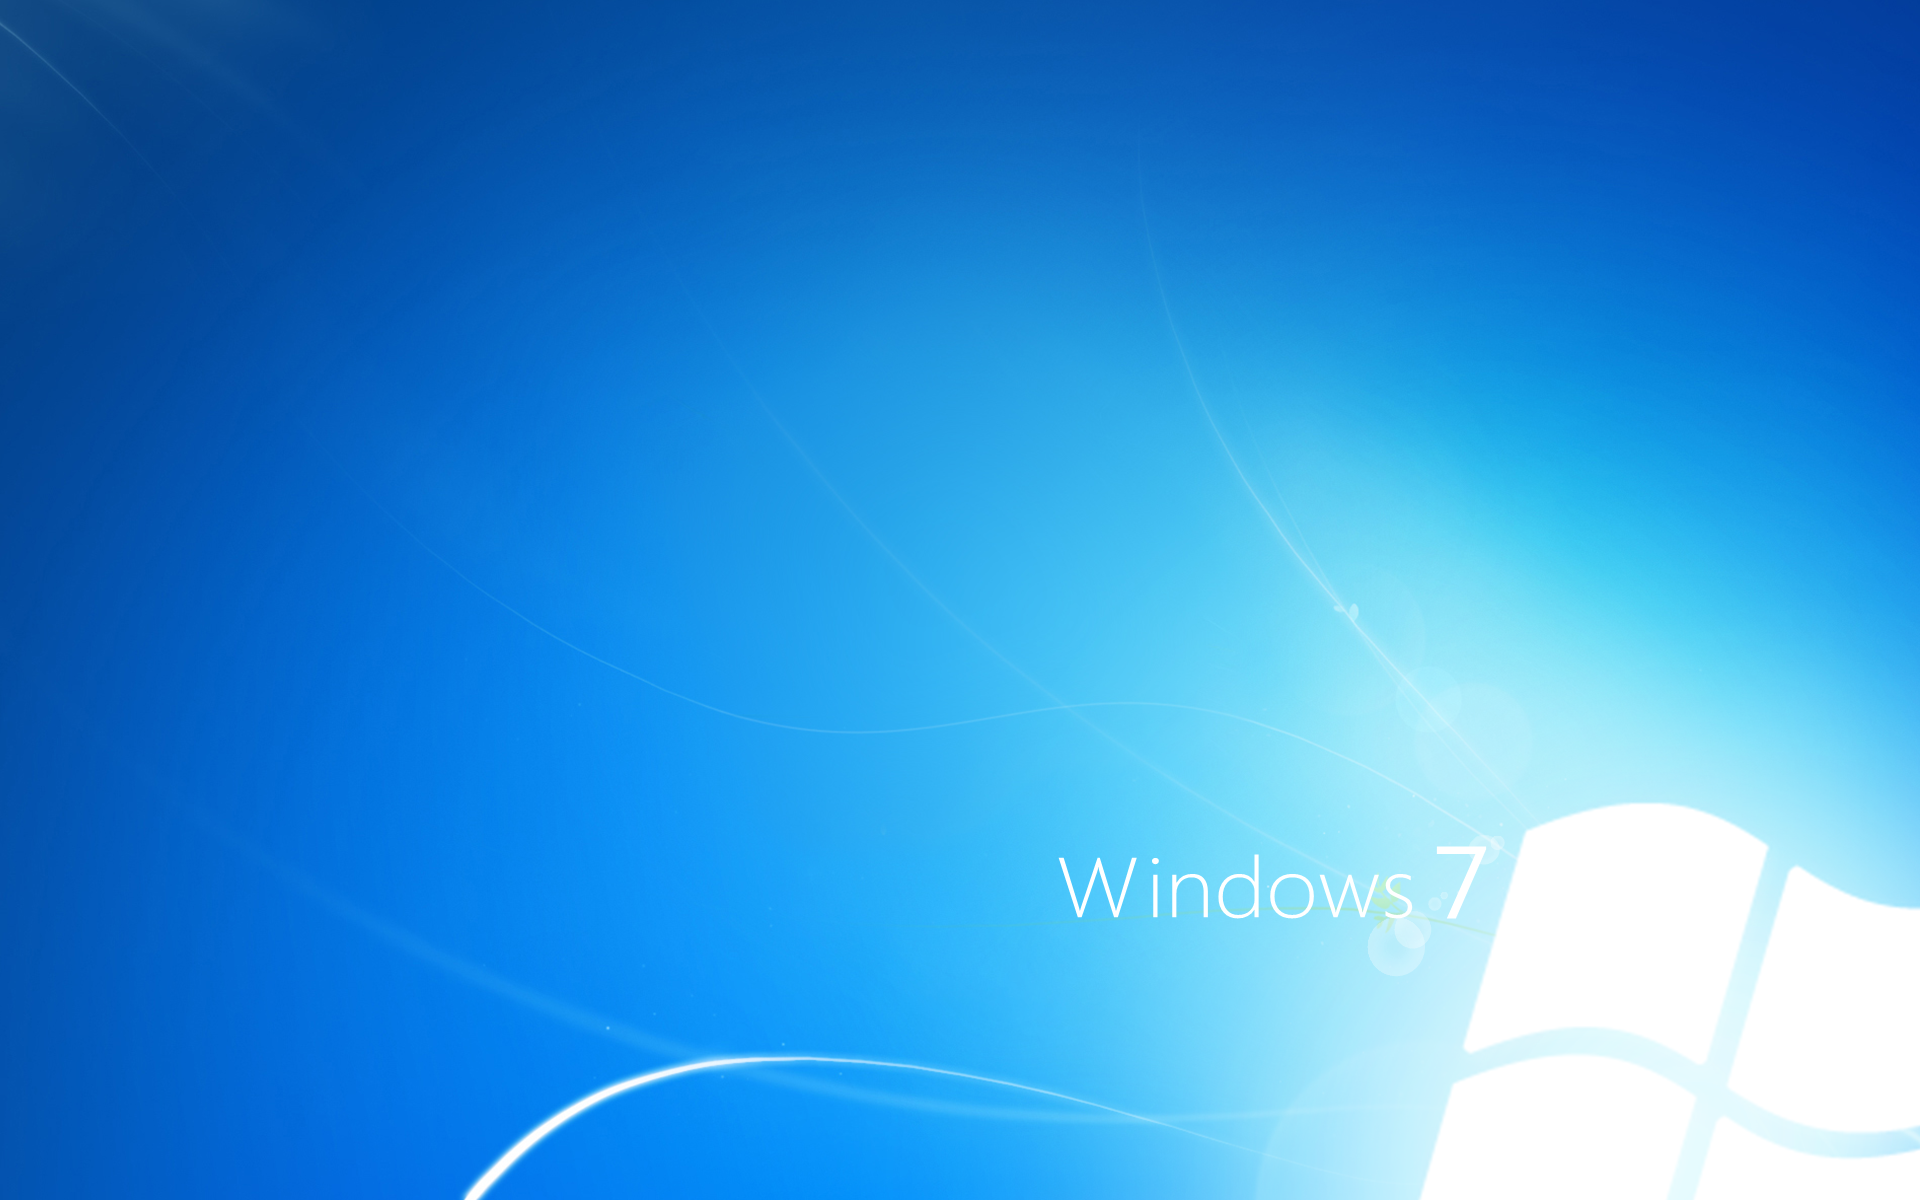 Windows 7 « Awesome Wallpapers « Page 5